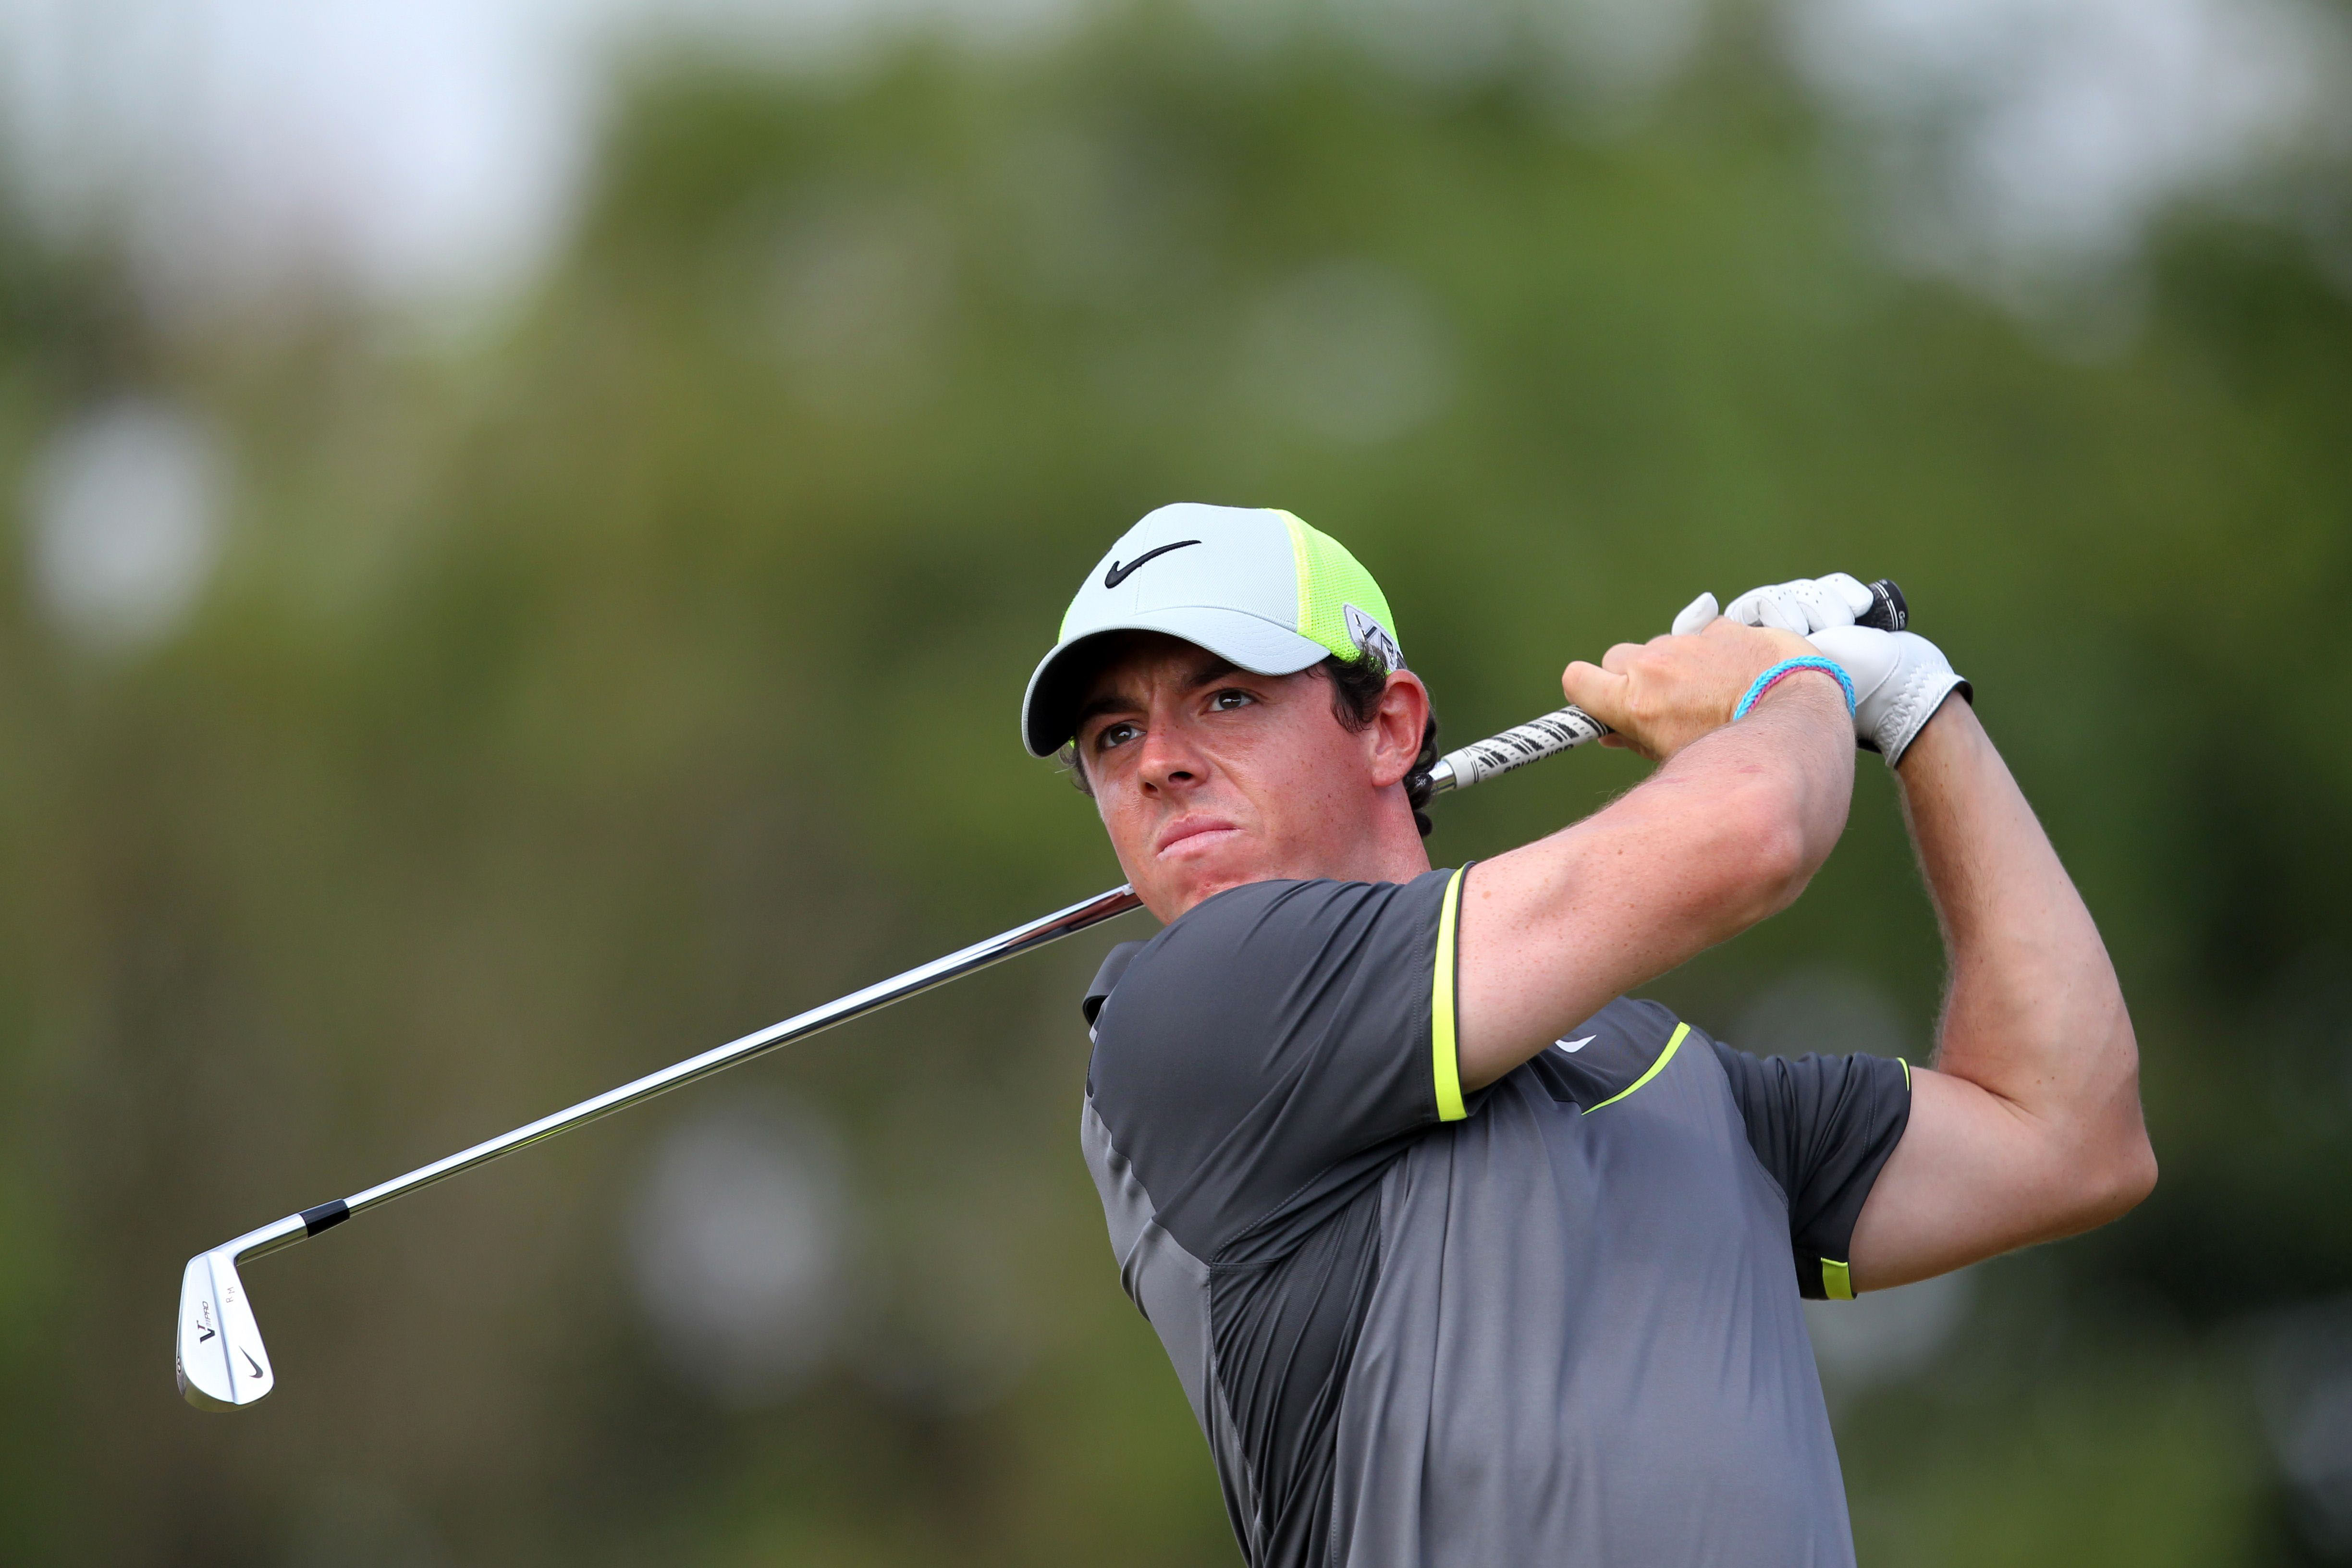 Northern Ireland's Rory McIlroy watches his shot from the 8th tee during his second round, on day two of the 2014 British Open Golf Championship at Royal Liverpool Golf Course in Hoylake, north west England on July 18, 2014. Rory McIlroy went three clear of the field around the turn in his second round at Royal Liverpool on Friday. AFP PHOTO / PETER MUHLY